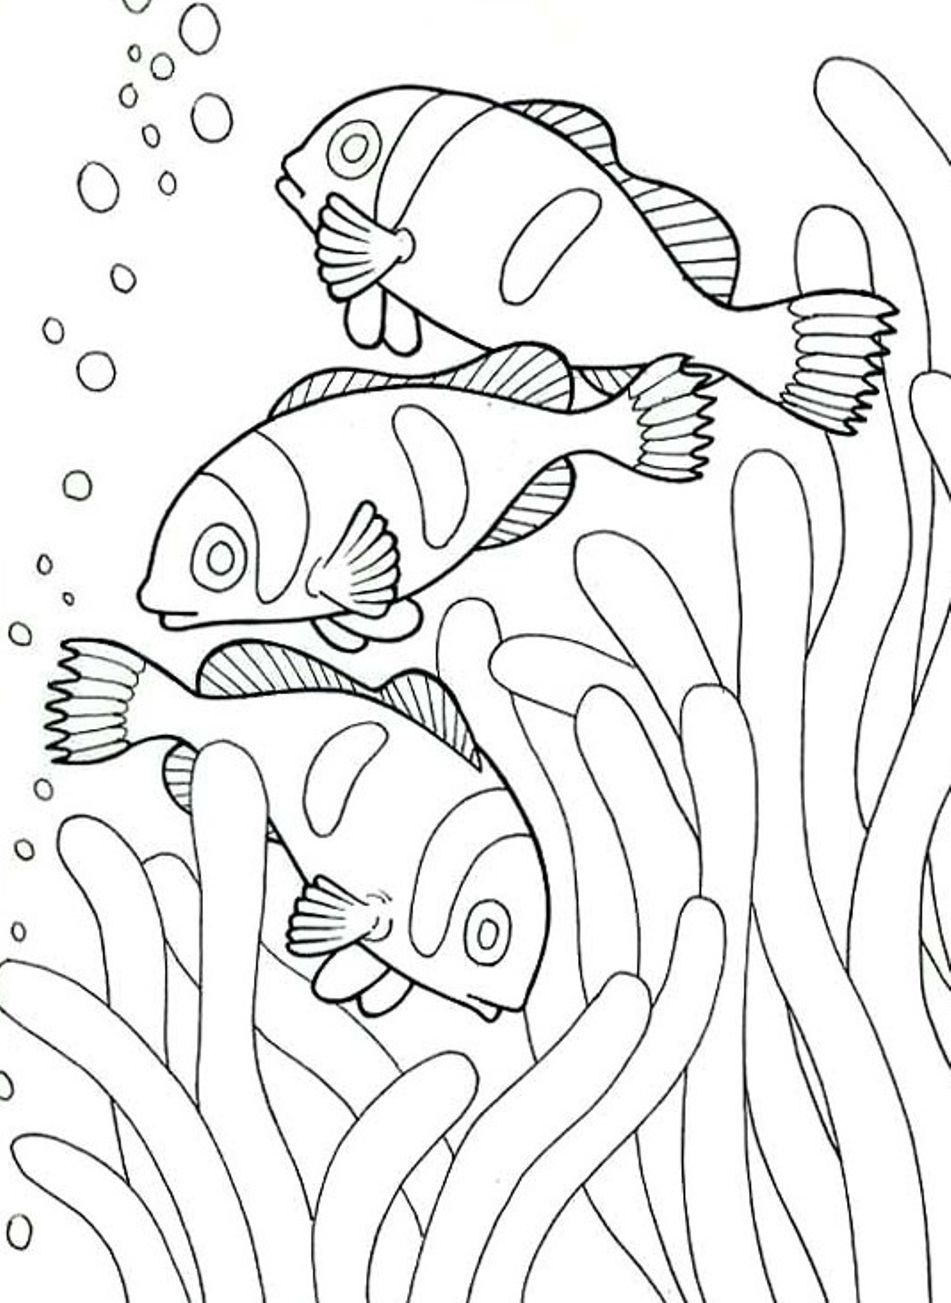 Draw remodel coloring pages for adults with sea Coloring